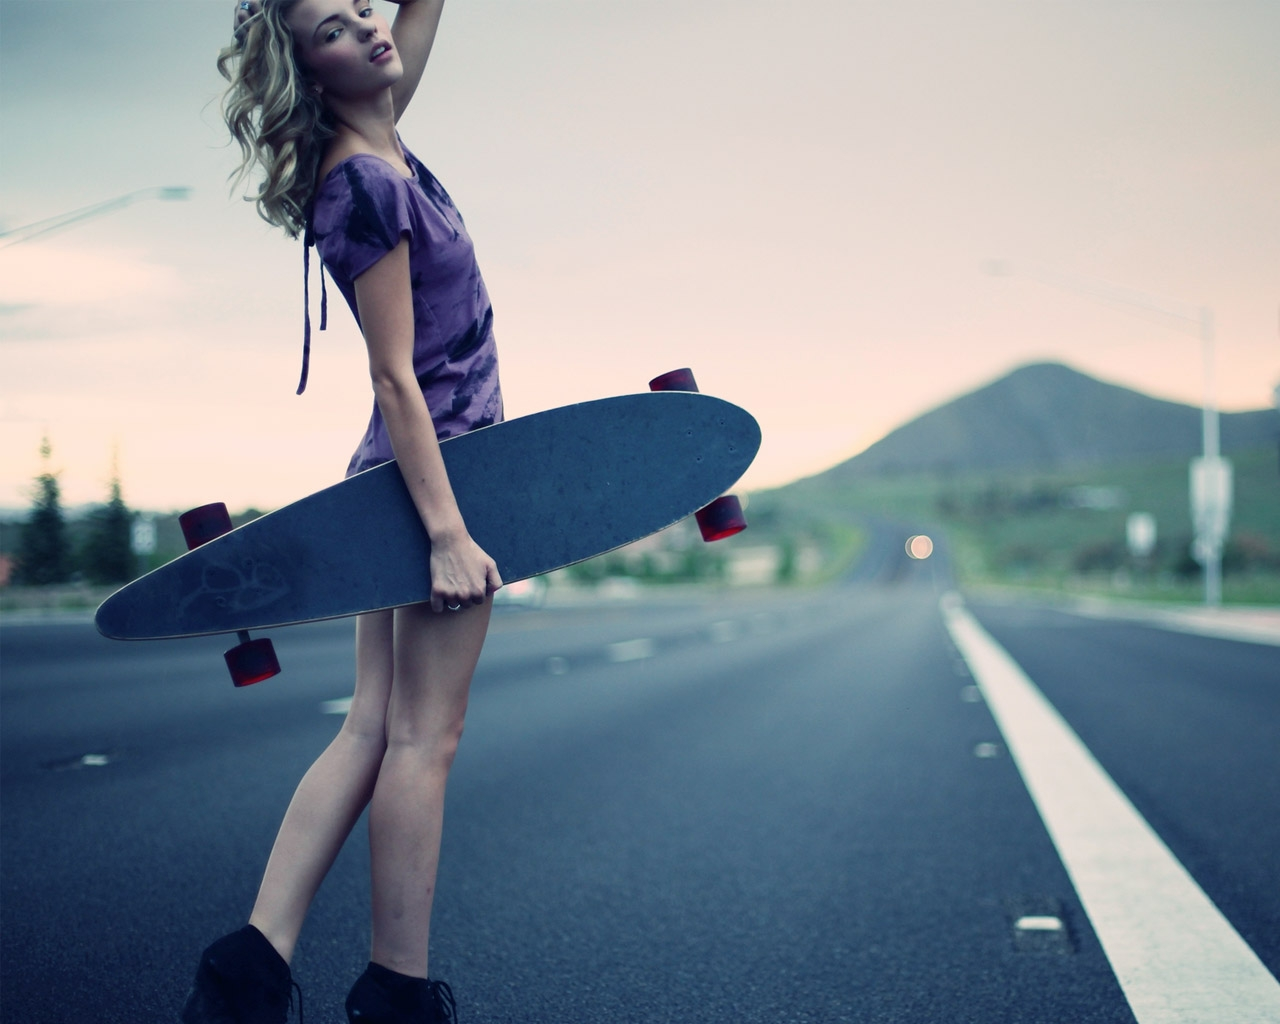 top longboarding wallpapers 1920x1080 - photo #6